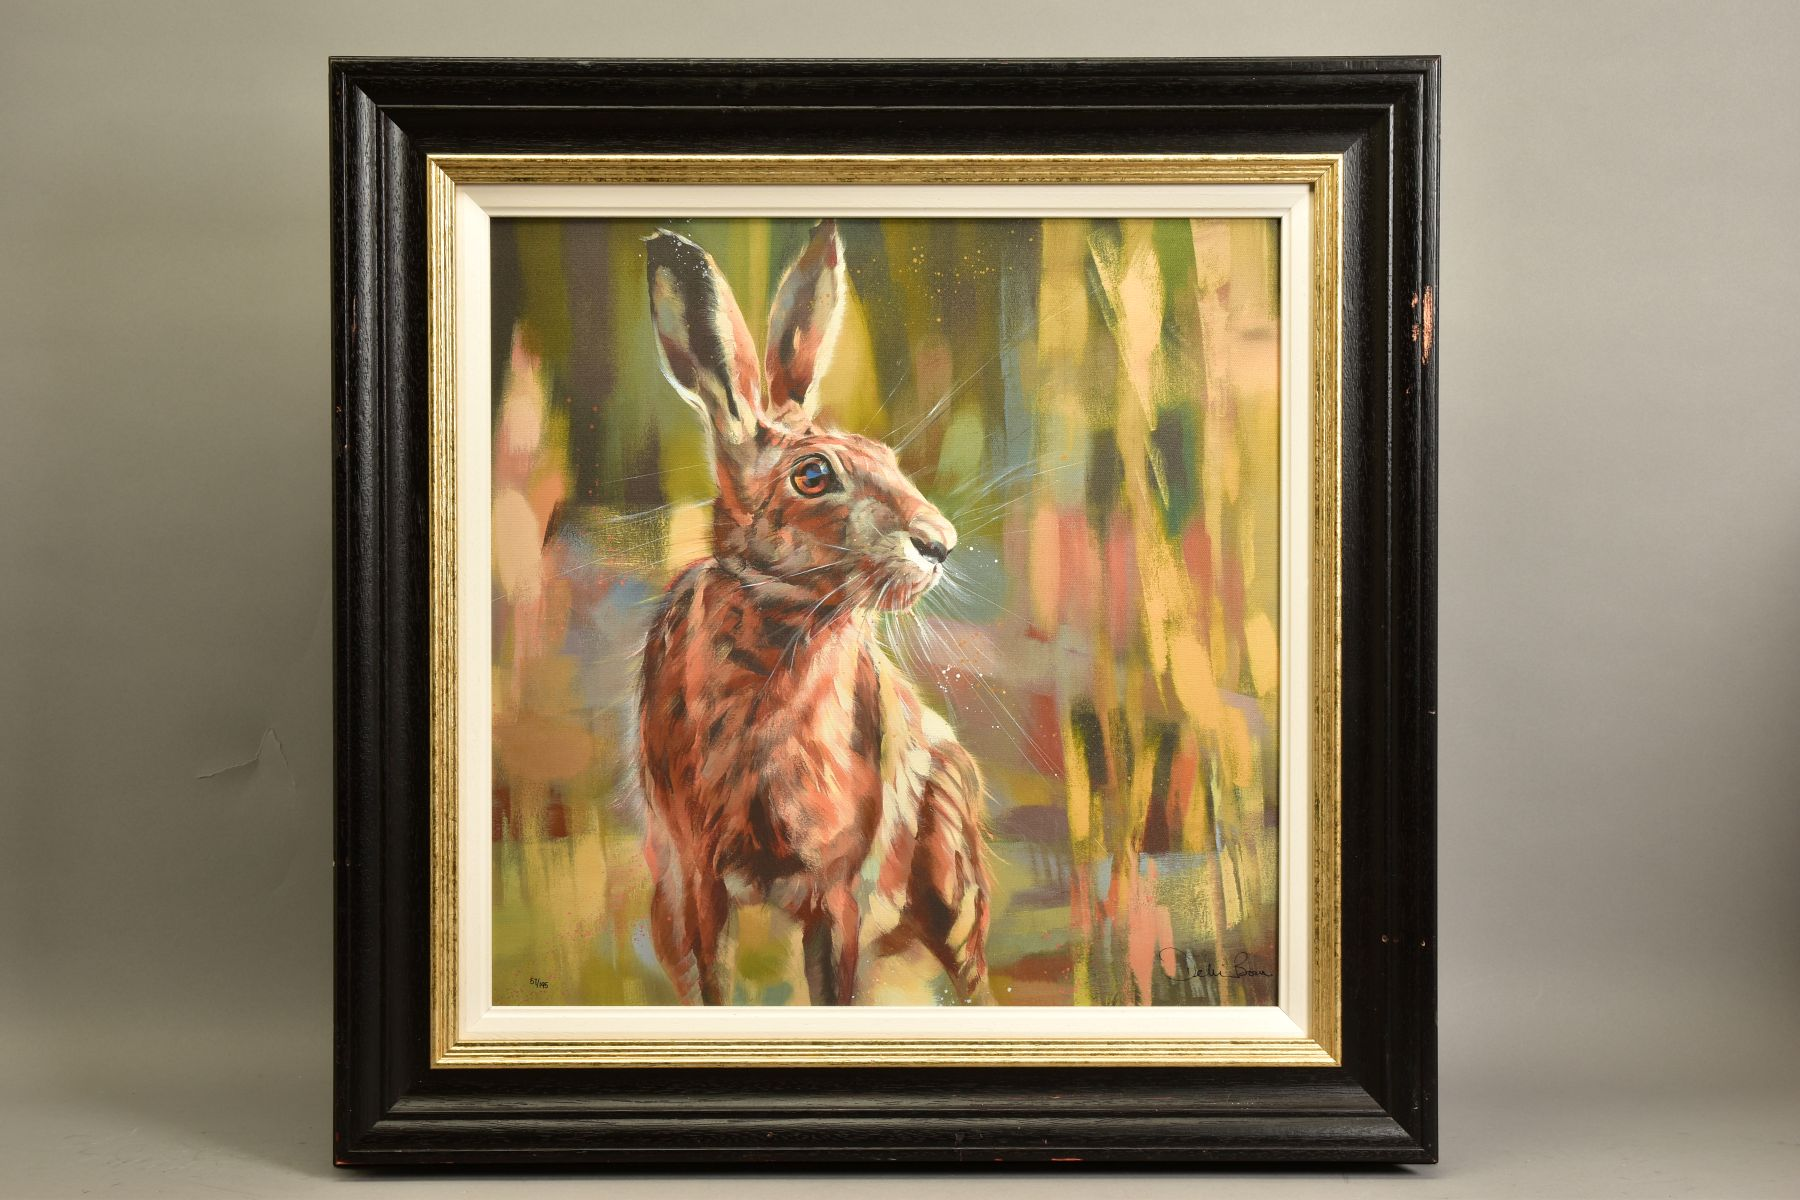 DEBBIE BOON (BRITISH CONTEMPORARY) 'POISED FOR ACTION' a limited edition print of Hare 57/195,